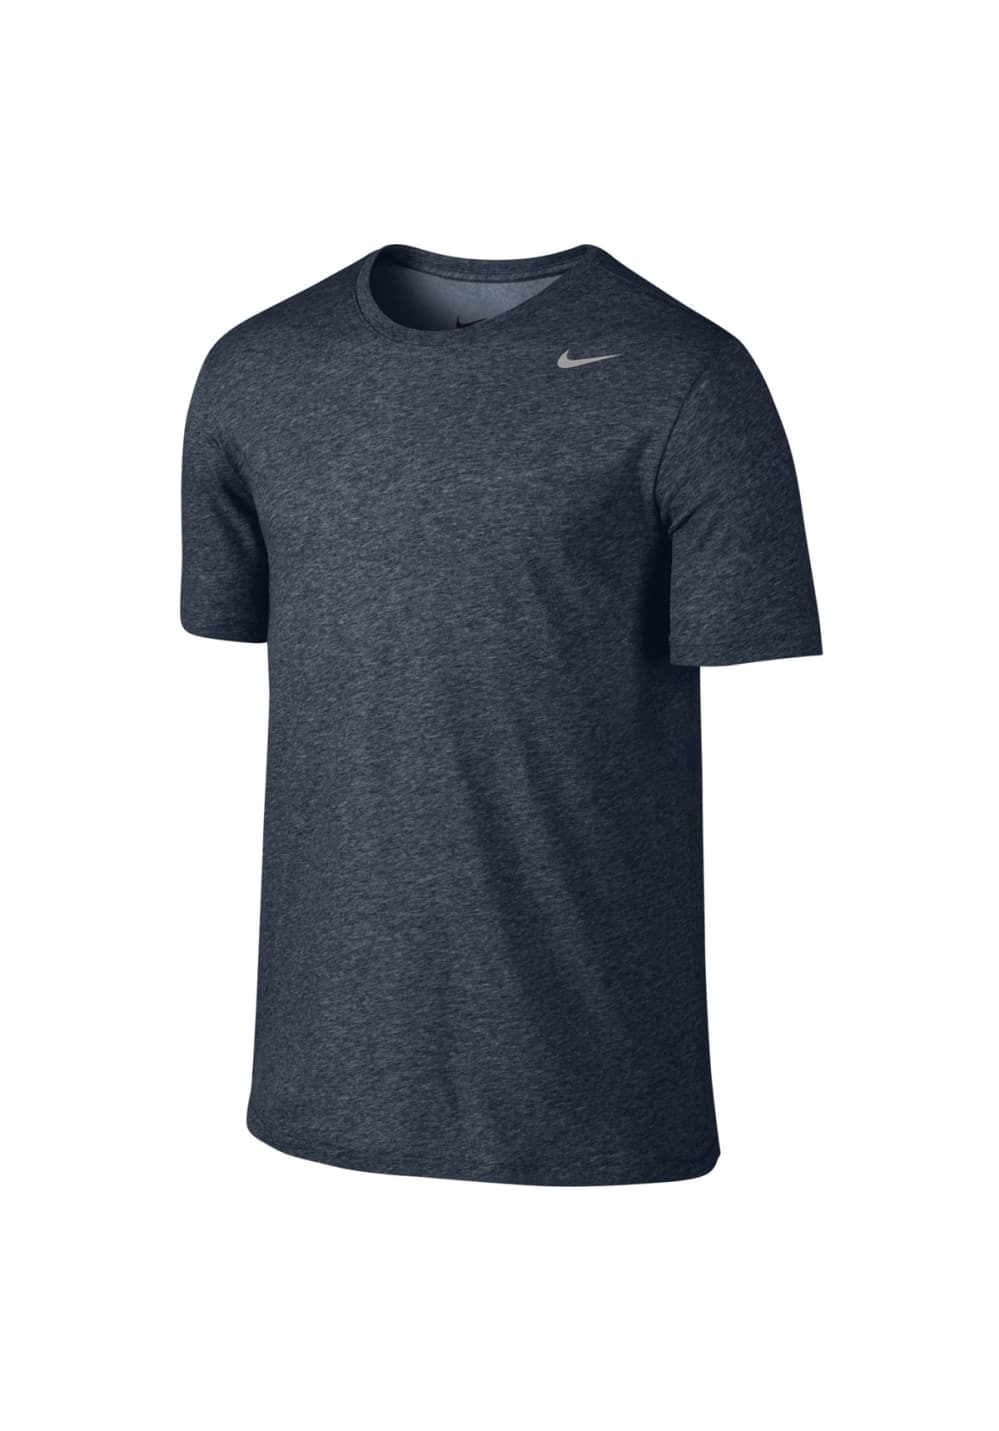 4f1614402e ... Nike Dry Training T-shirt - Running tops for Men - Black. Back to  Overview. 1  2. Previous